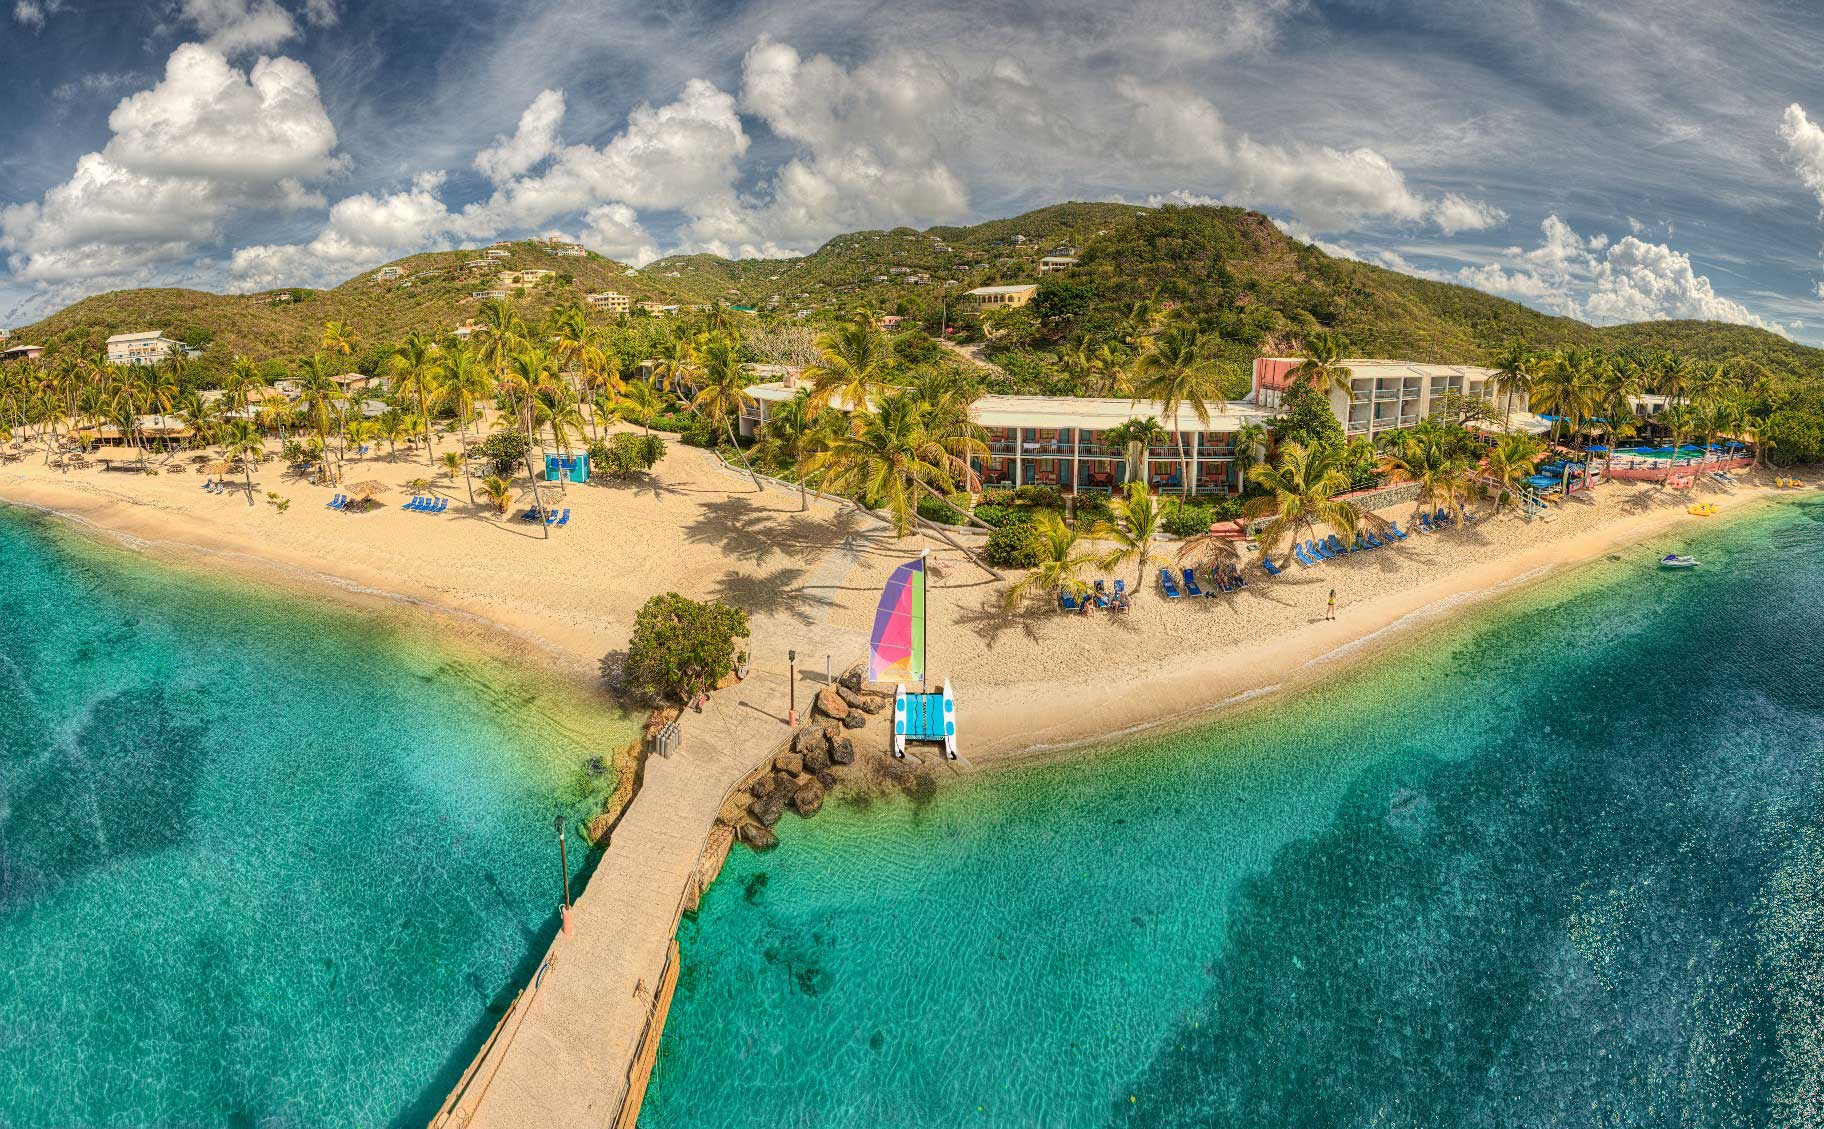 In All All Inclusive UsaIslands Inclusive Resorts 8X0PwOkn